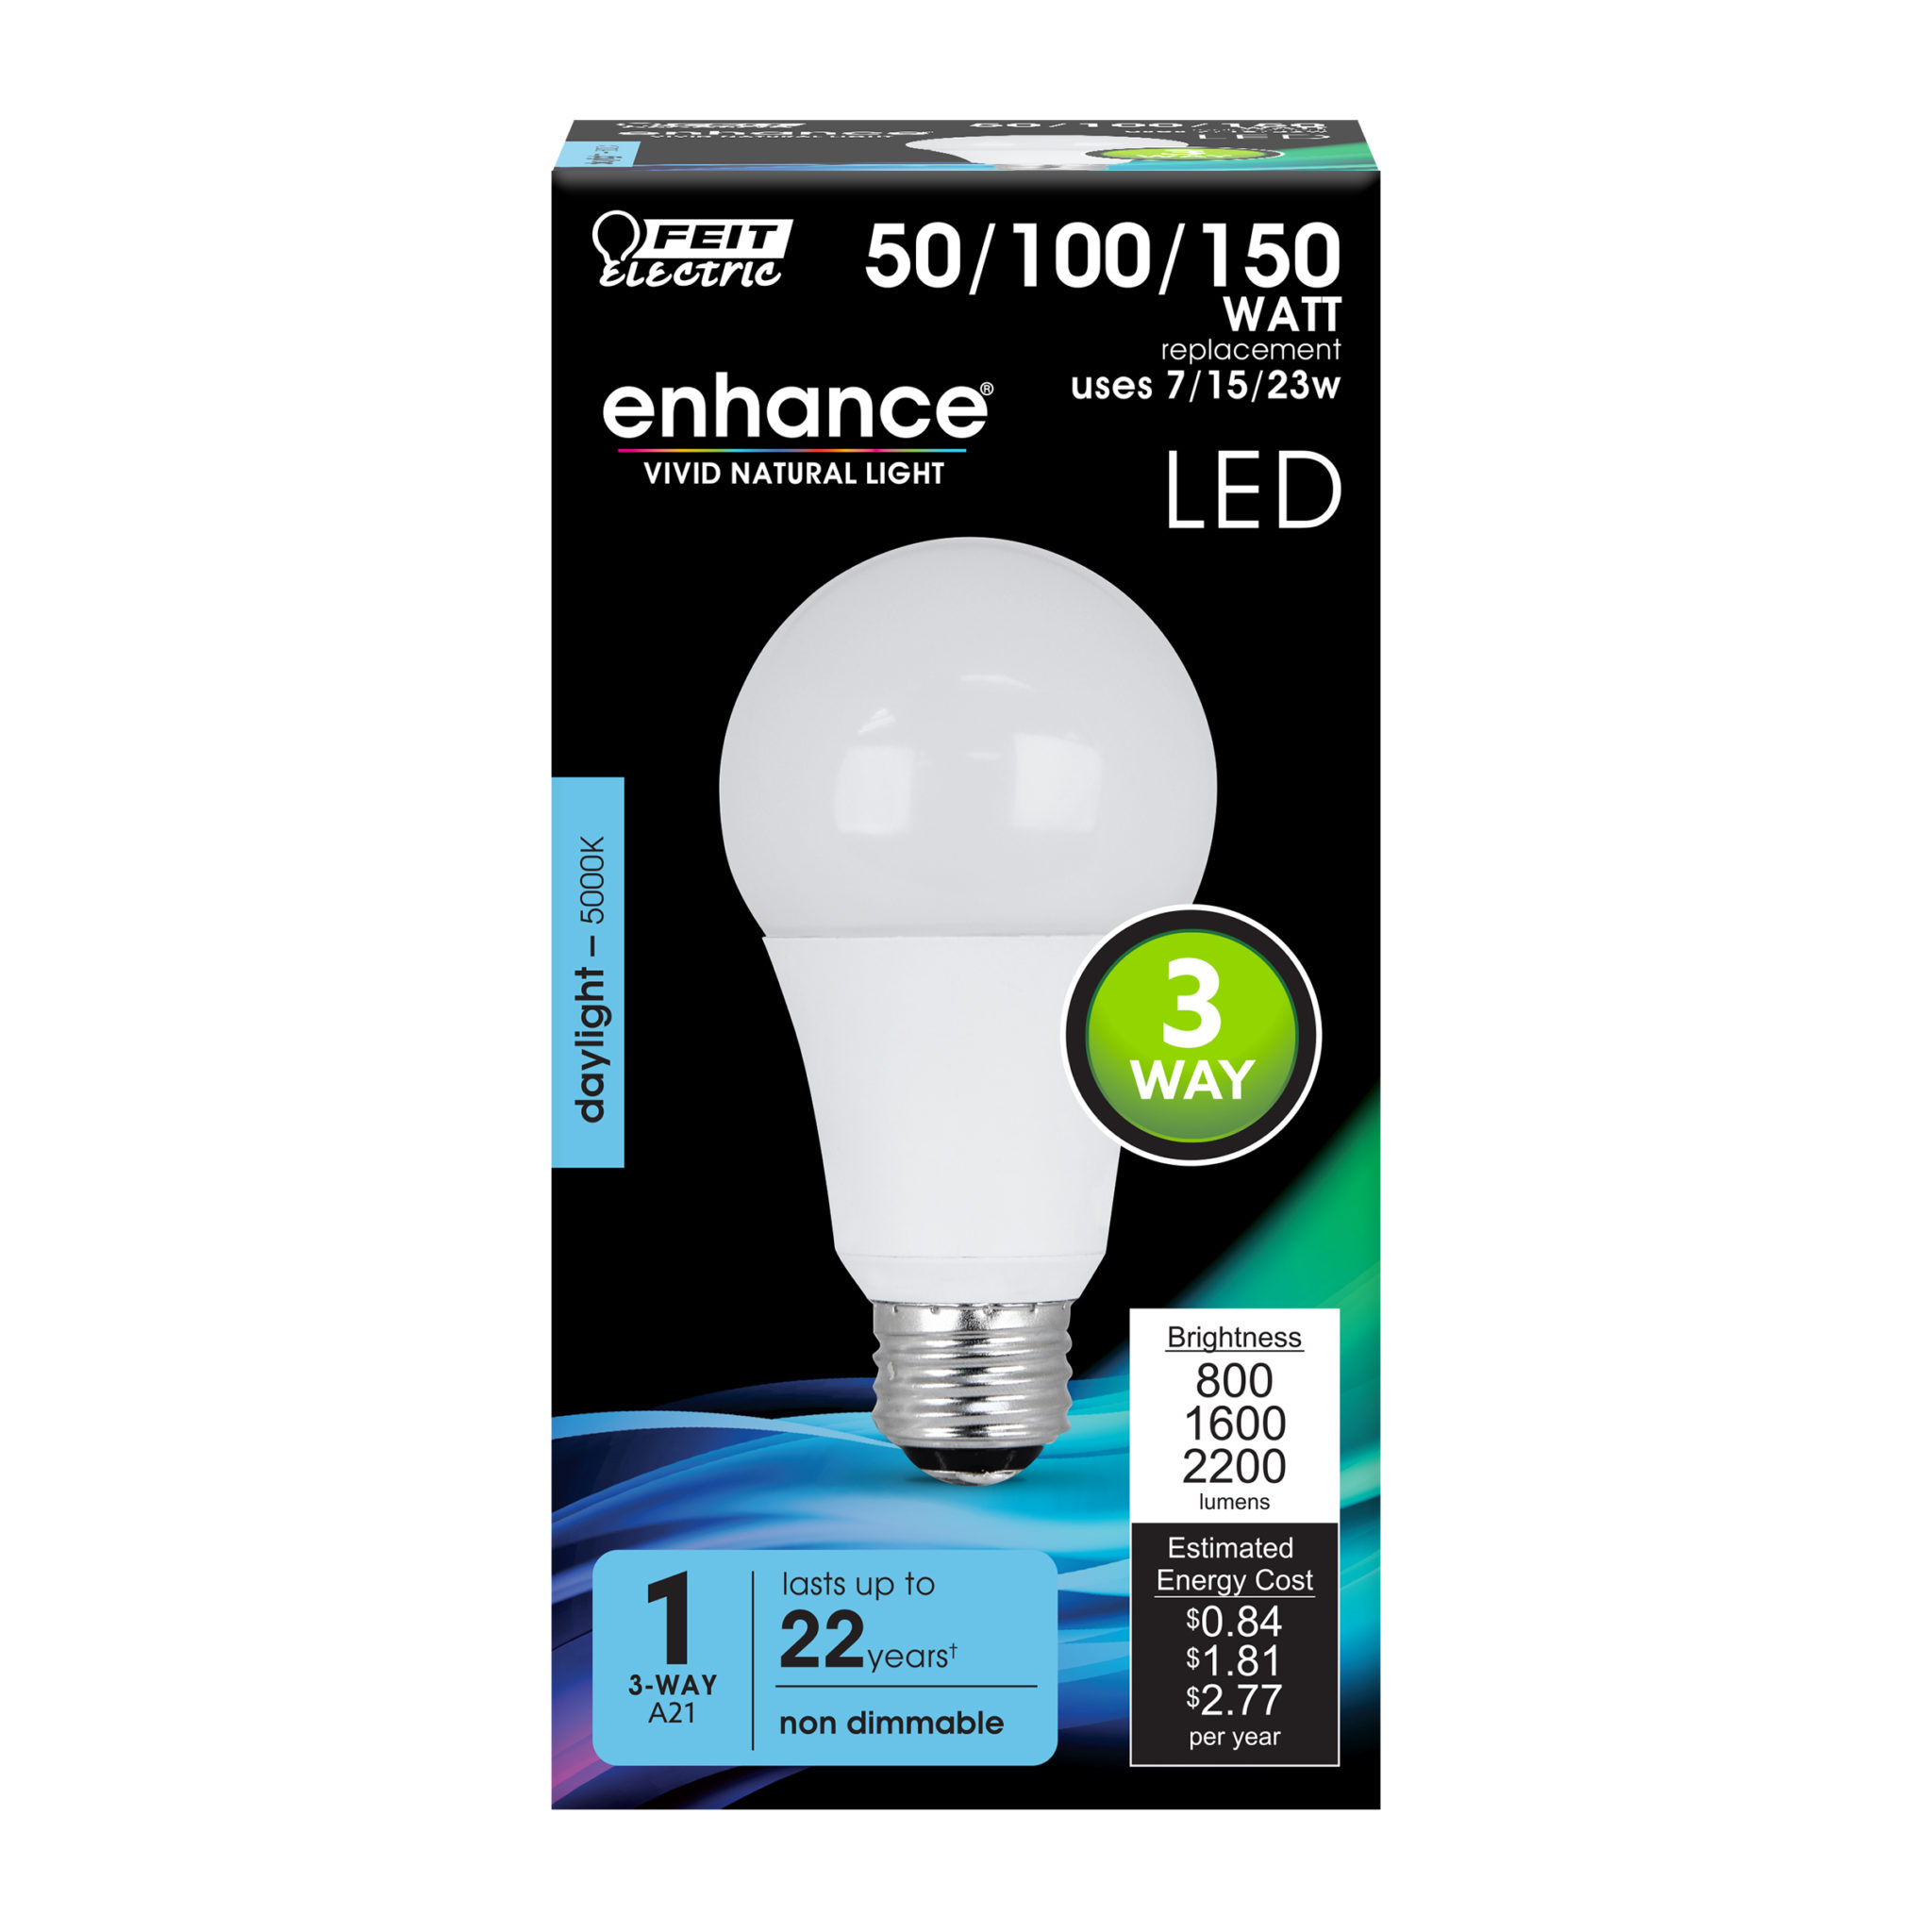 800 1600 2200 Lumen 5000k 3 Way Non Dimmable Led